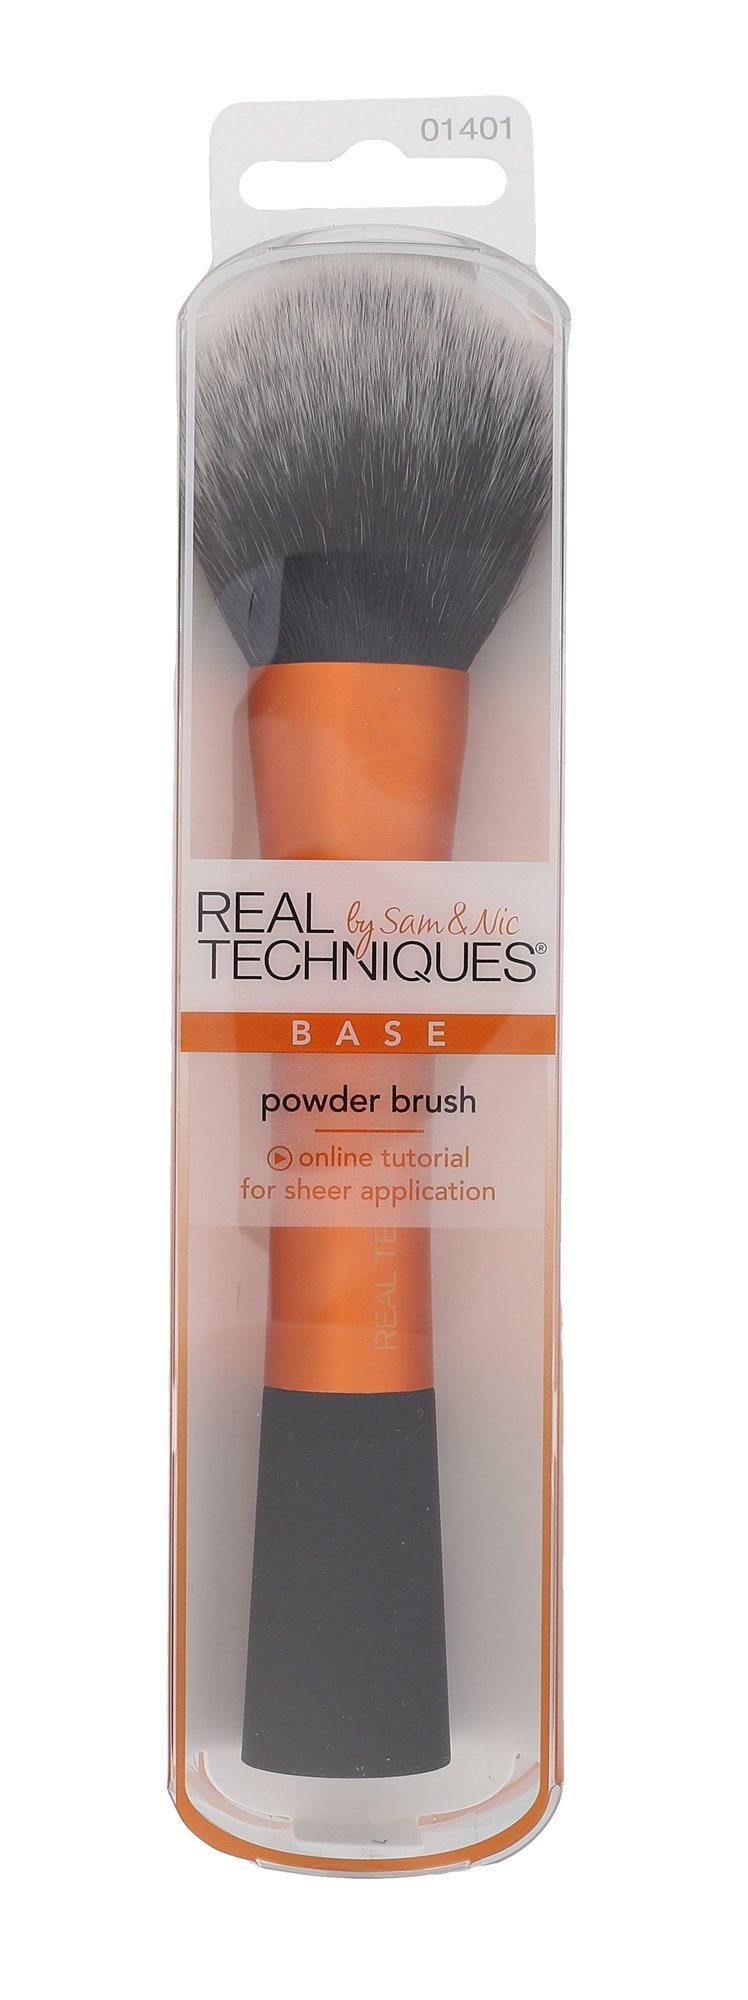 Real Techniques Base Powder Brush Cosmetic 1ks